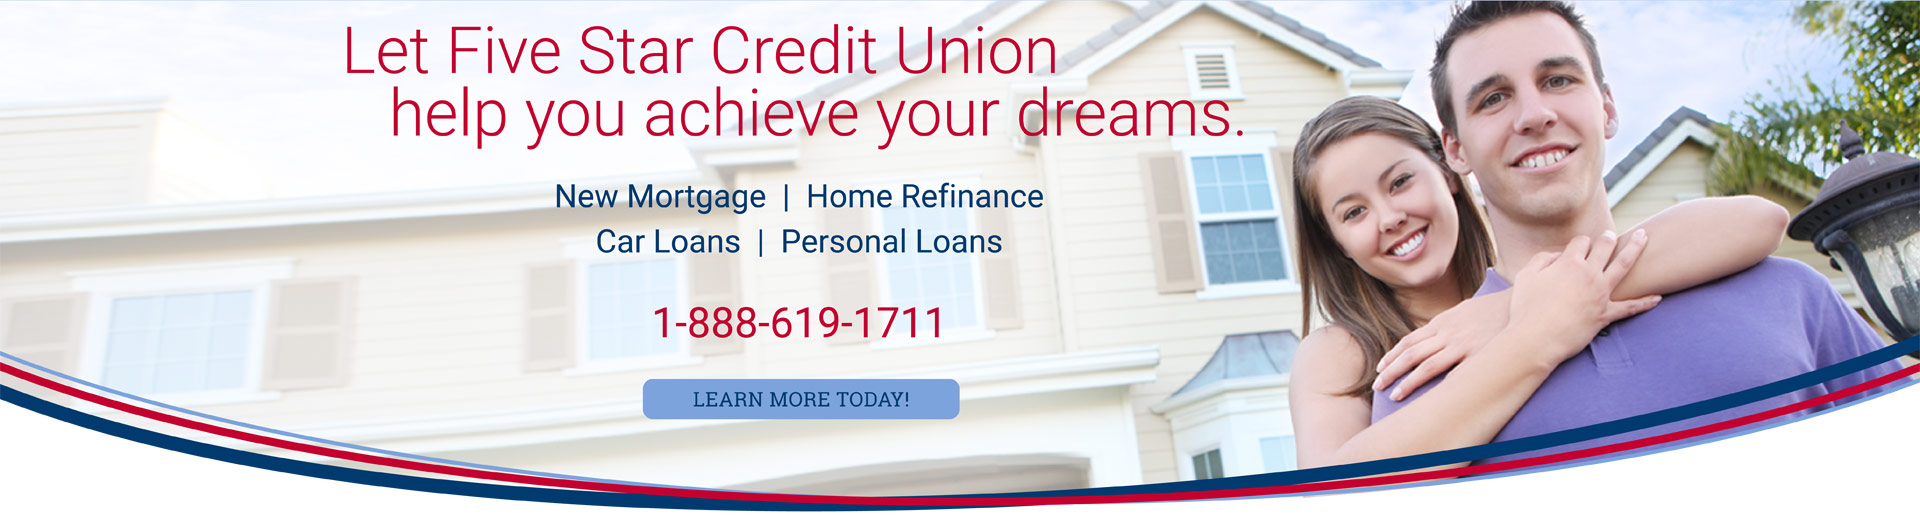 let-five-star-credit-union-help-you-achieve-your-dreams